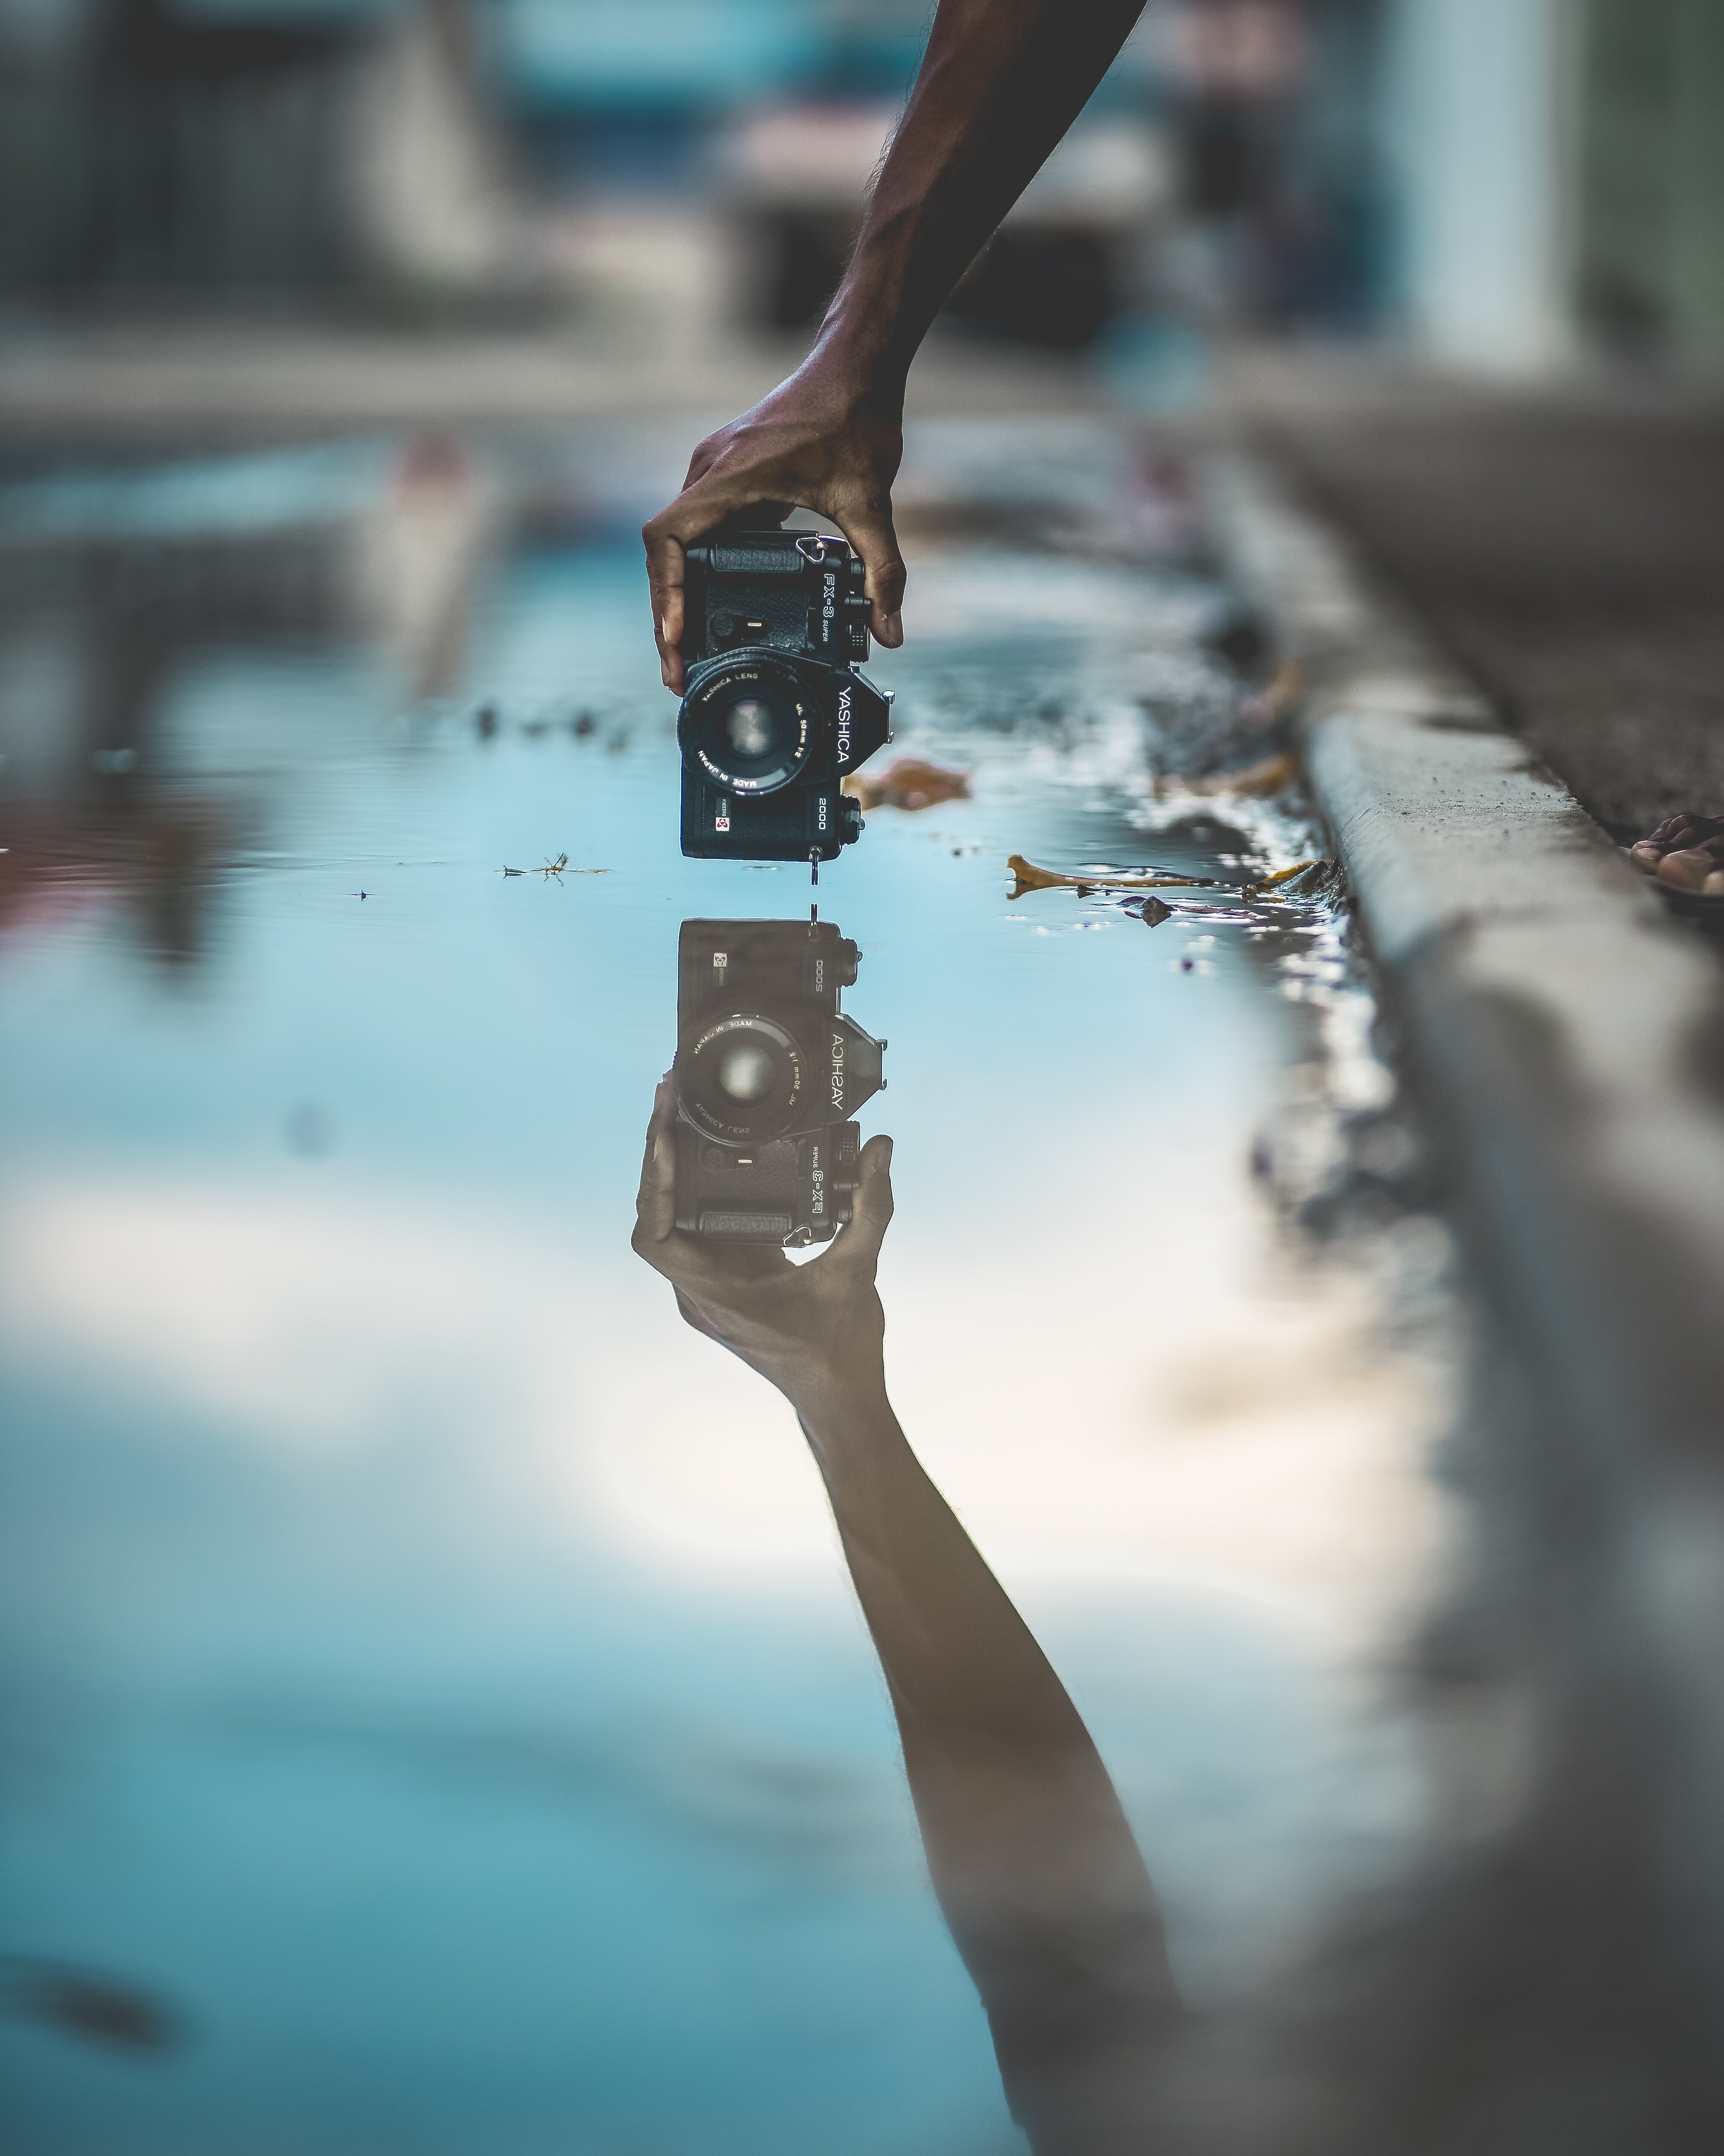 mirror photography of person holding DSLR camera with water reflection